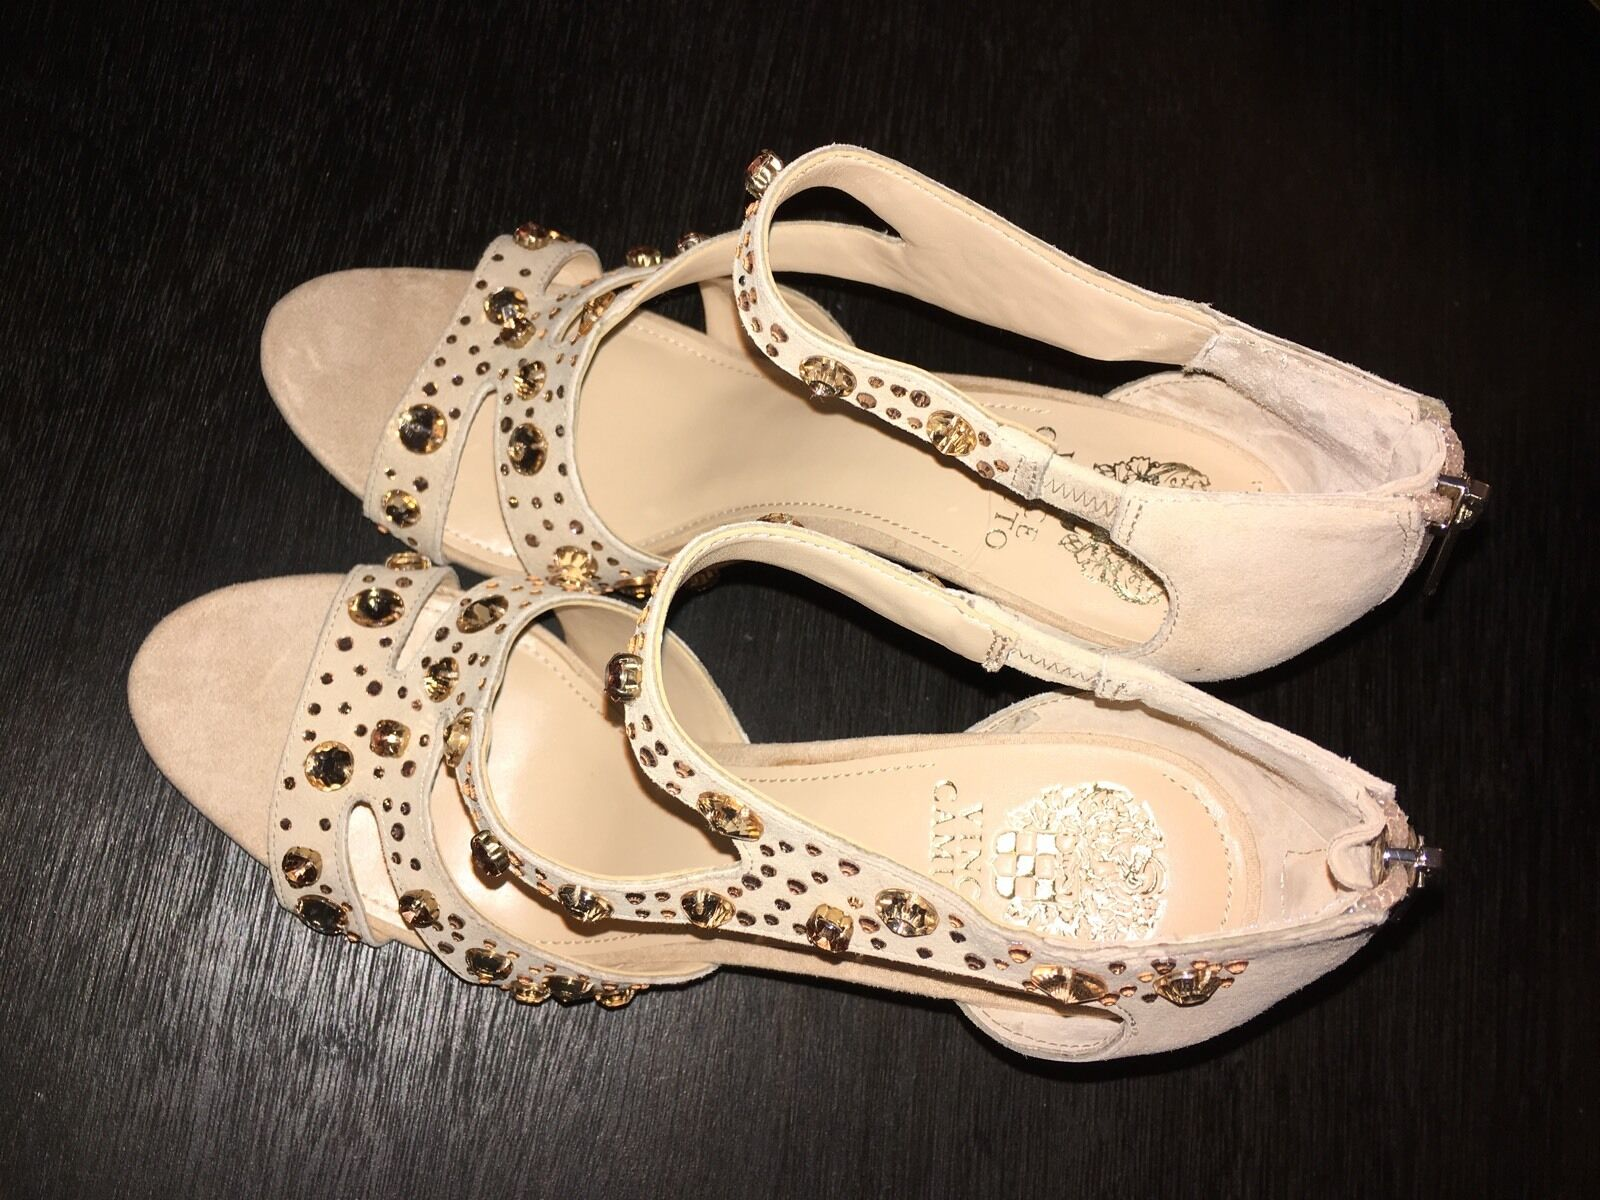 NEW VINCE CAMUTO KAYANNE PETAL SUEDE JEWELED DRESS SANDALS 10 10 10 M e6207a